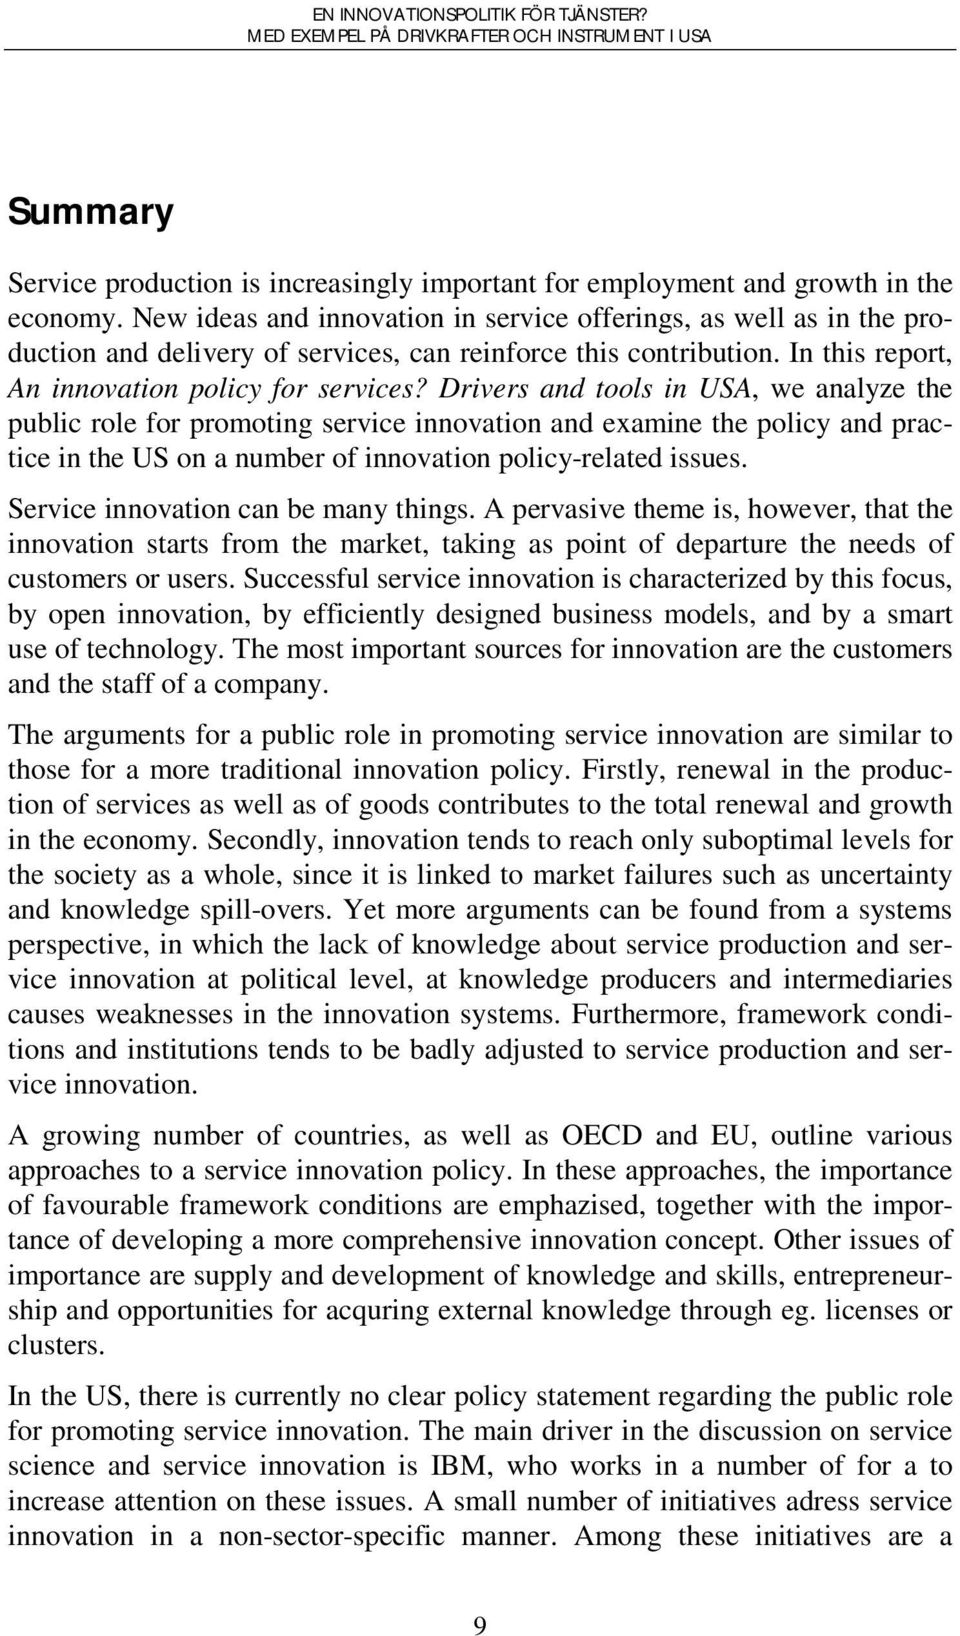 Drivers and tools in USA, we analyze the public role for promoting service innovation and examine the policy and practice in the US on a number of innovation policy-related issues.